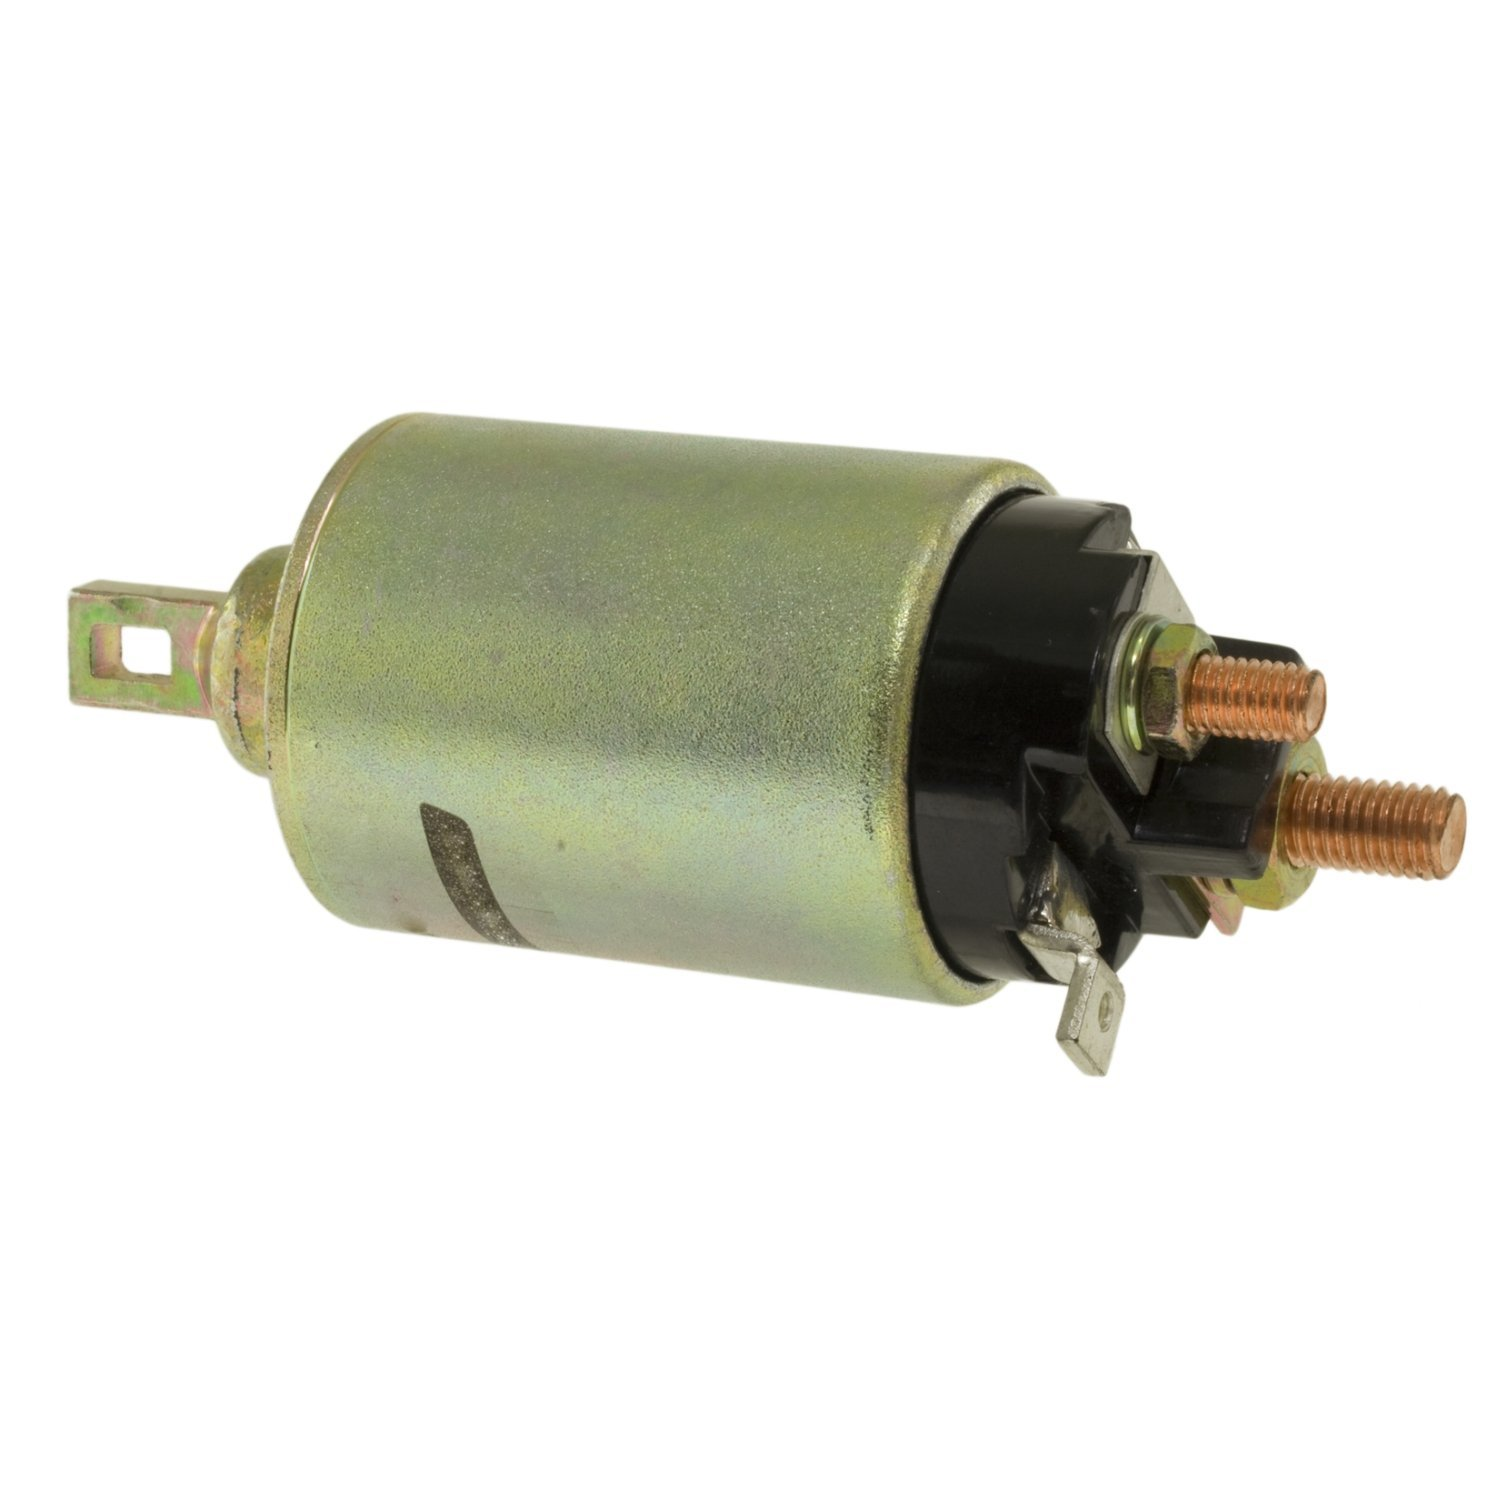 Cheap Remote Starter Solenoid Find Deals On Yerf Dog Scout Wiring Diagram Get Quotations Acdelco D959a Professional